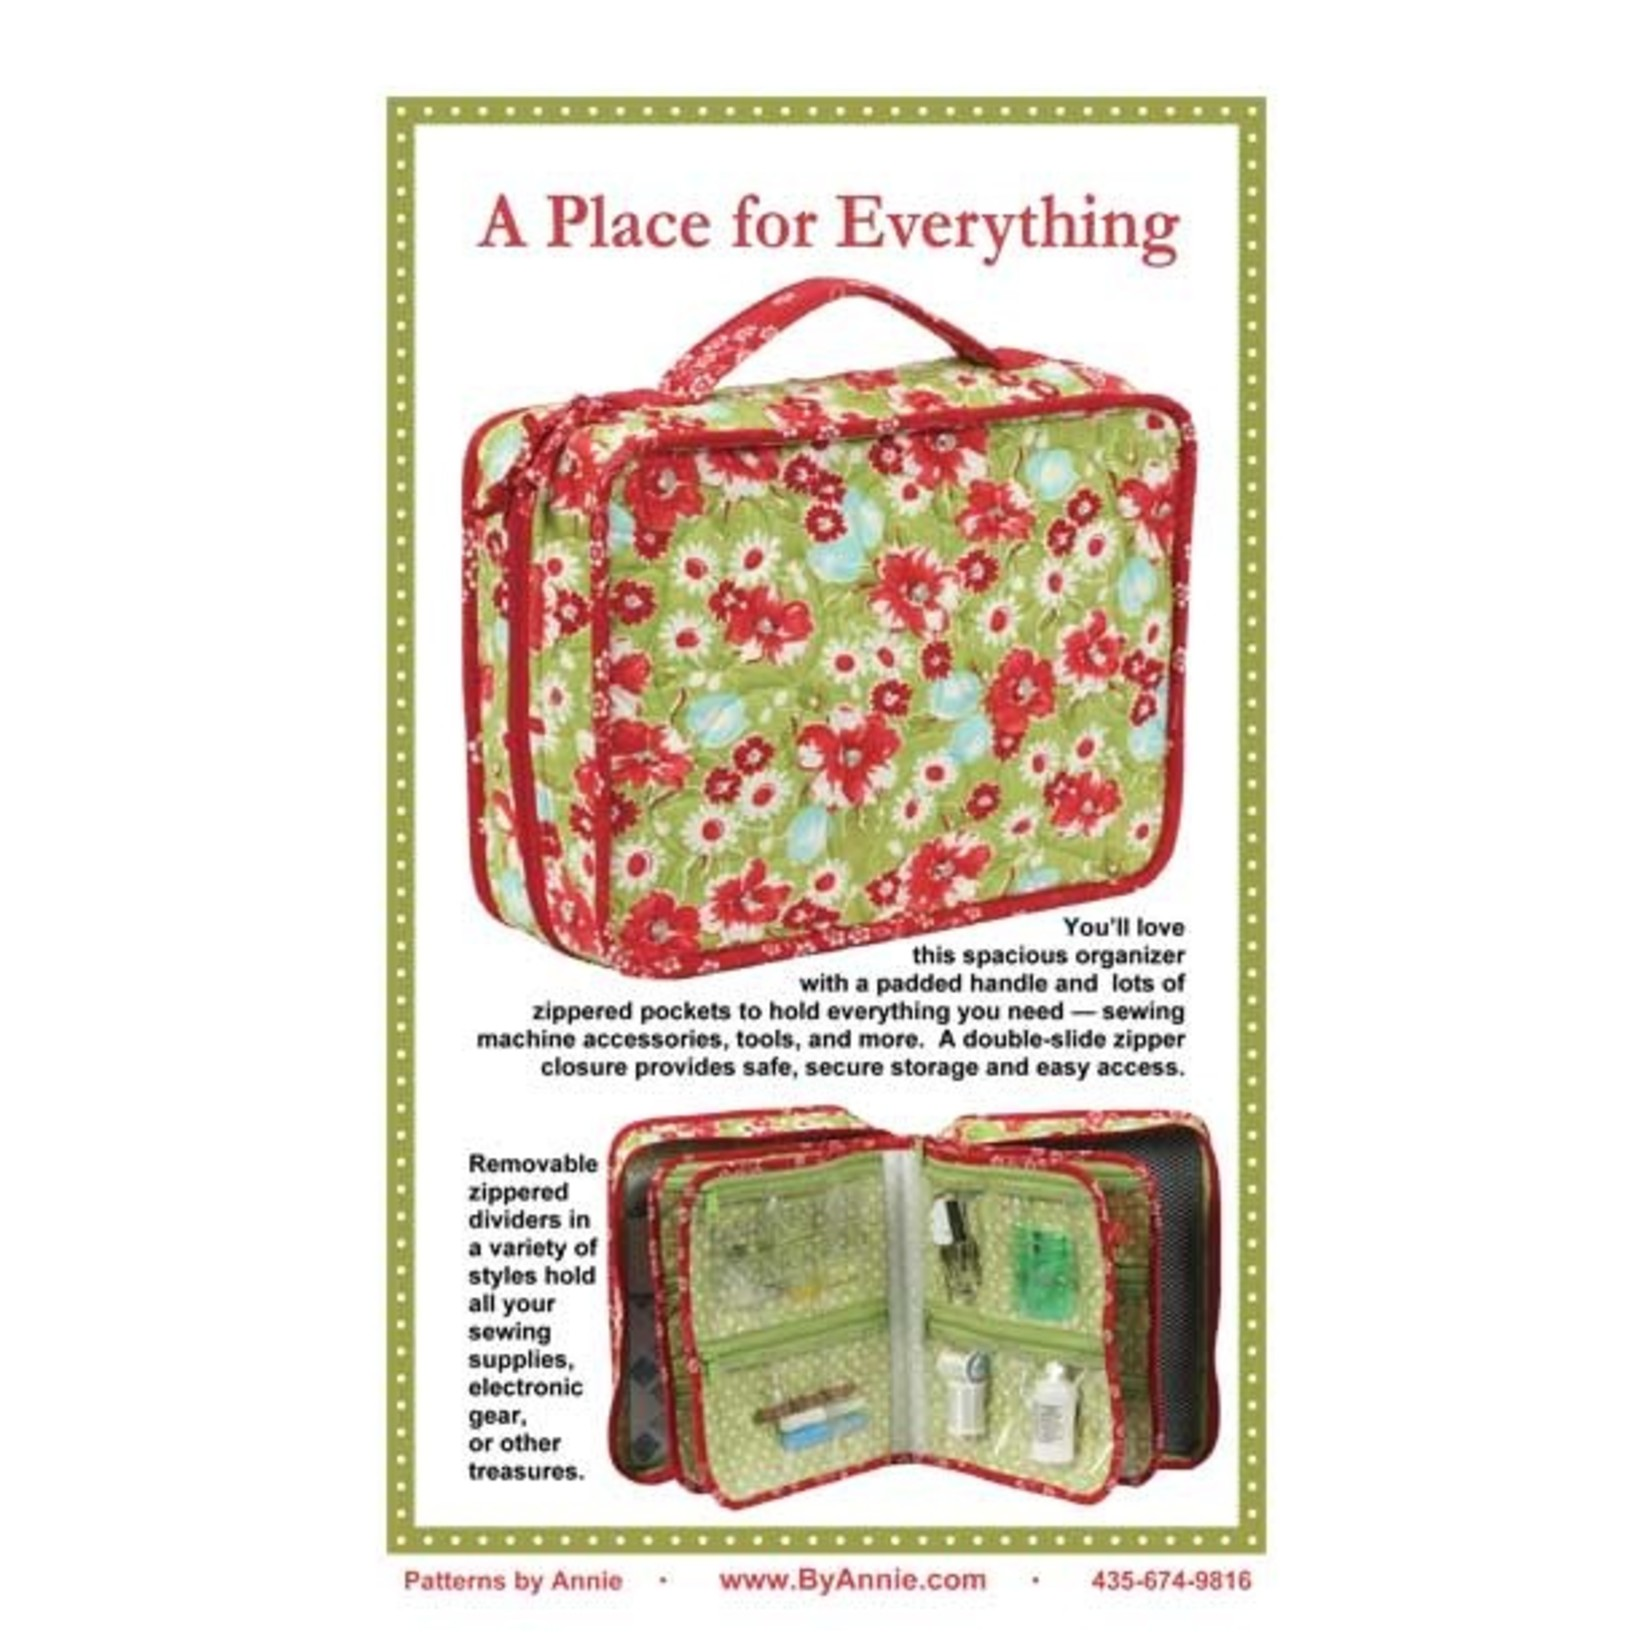 BY ANNIE A PLACE FOR EVERYTHING PATTERN AND KIT